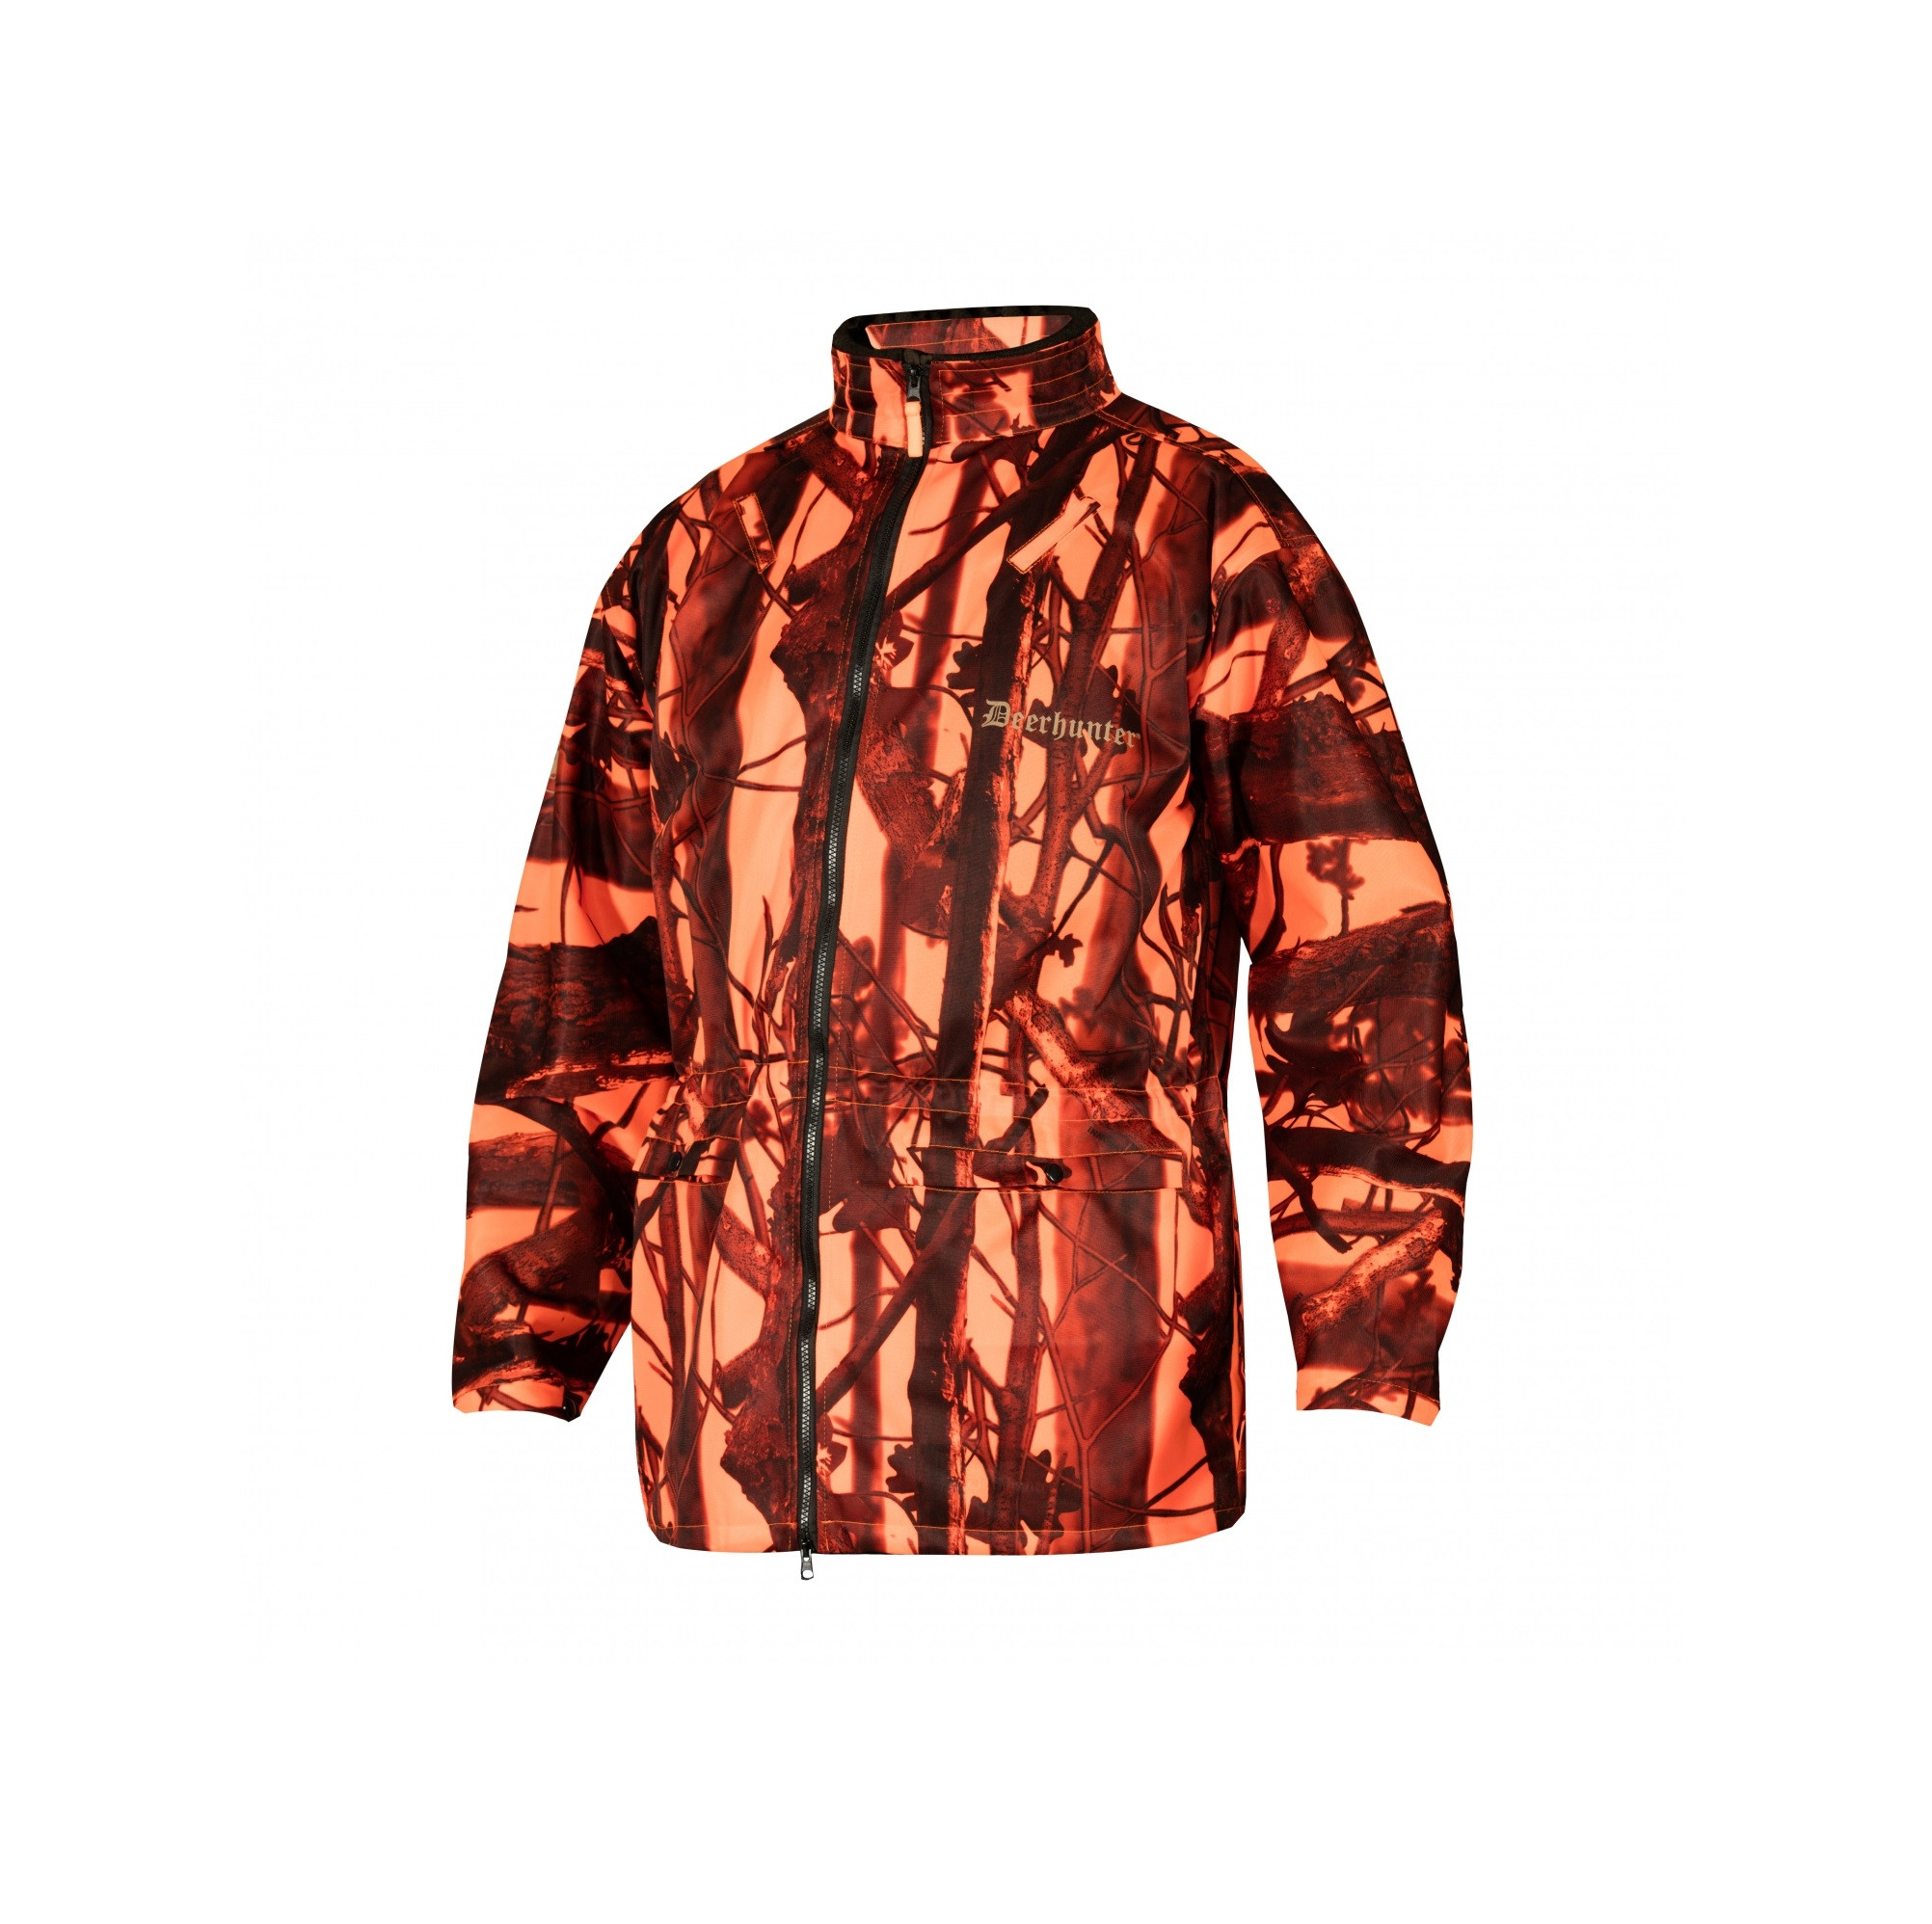 Vêtements de chasse Veste Protector Orange Deerhunter - 1